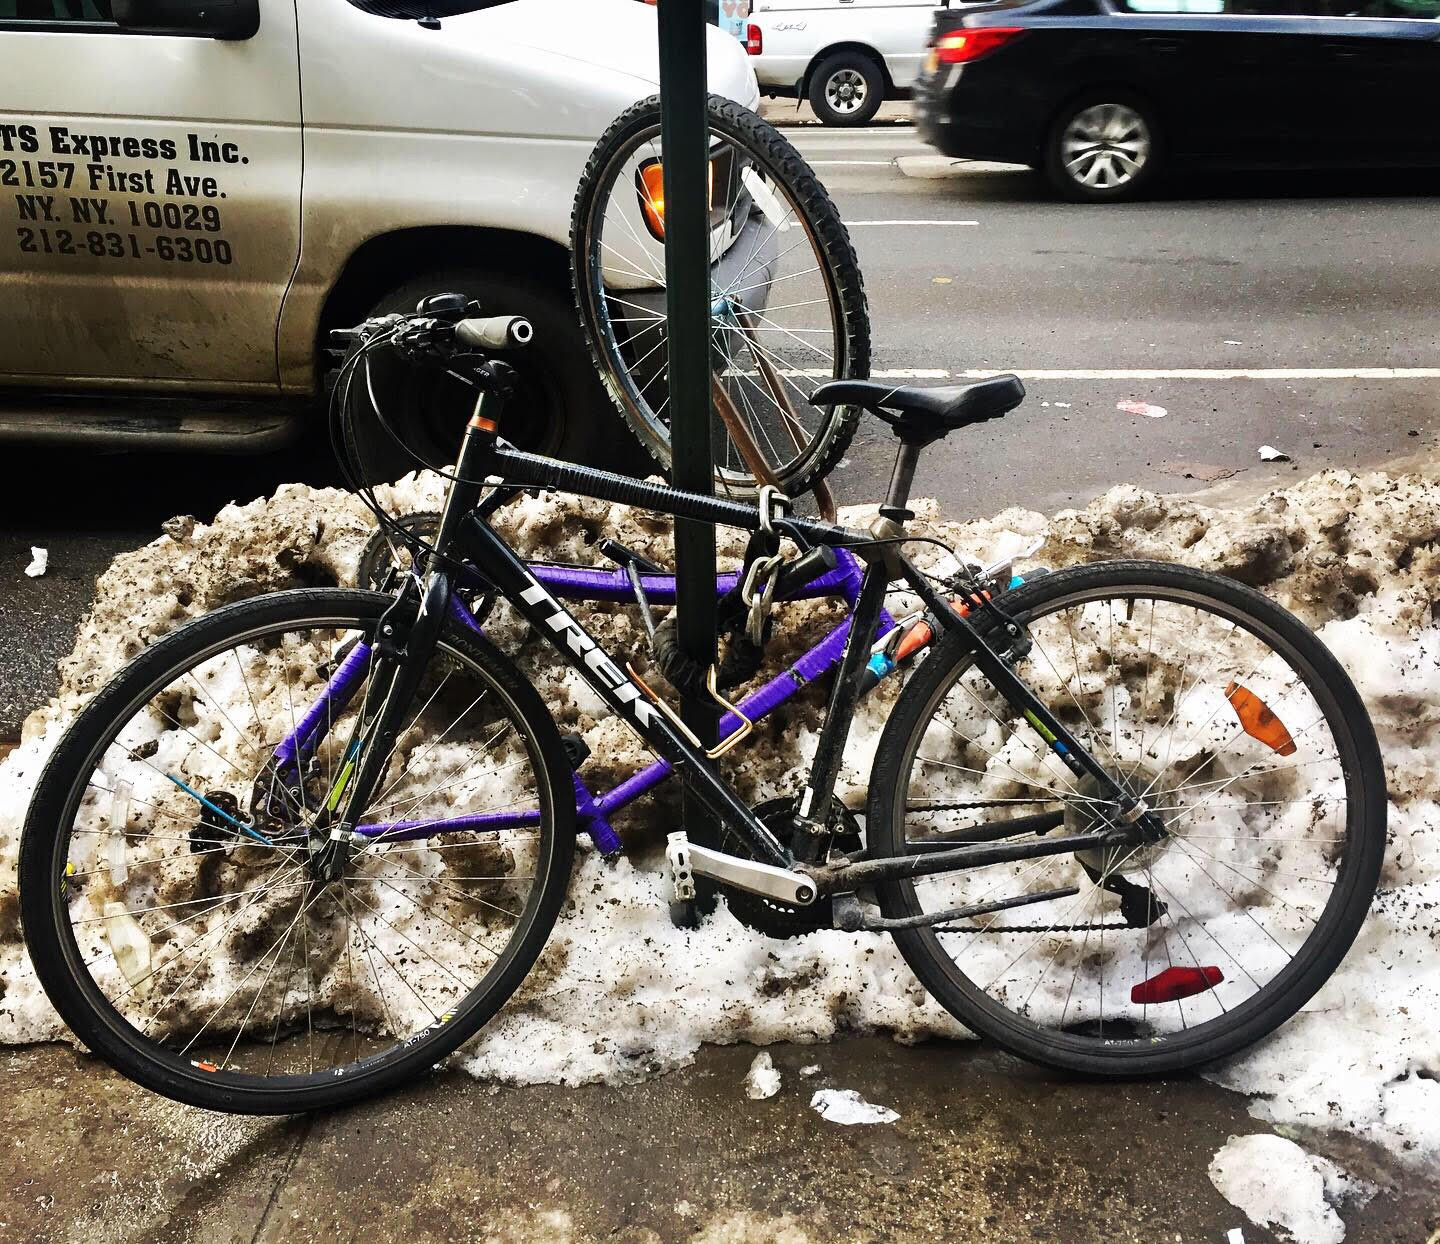 New York City bikes after the snow.